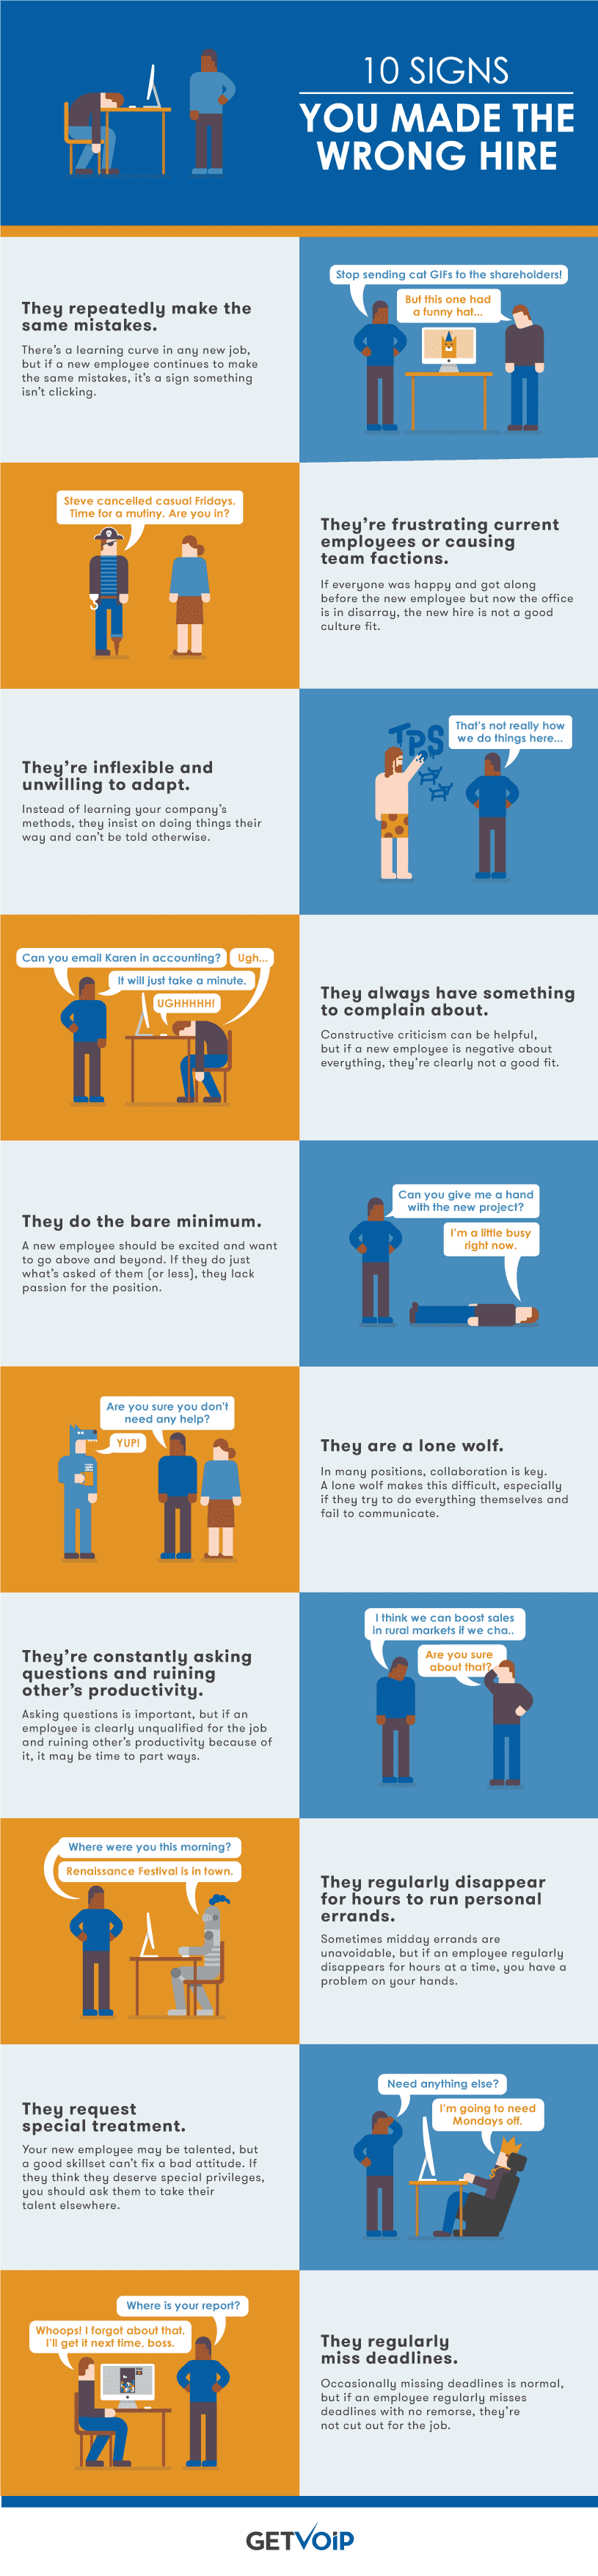 10 Signs You Made the Wrong Hire